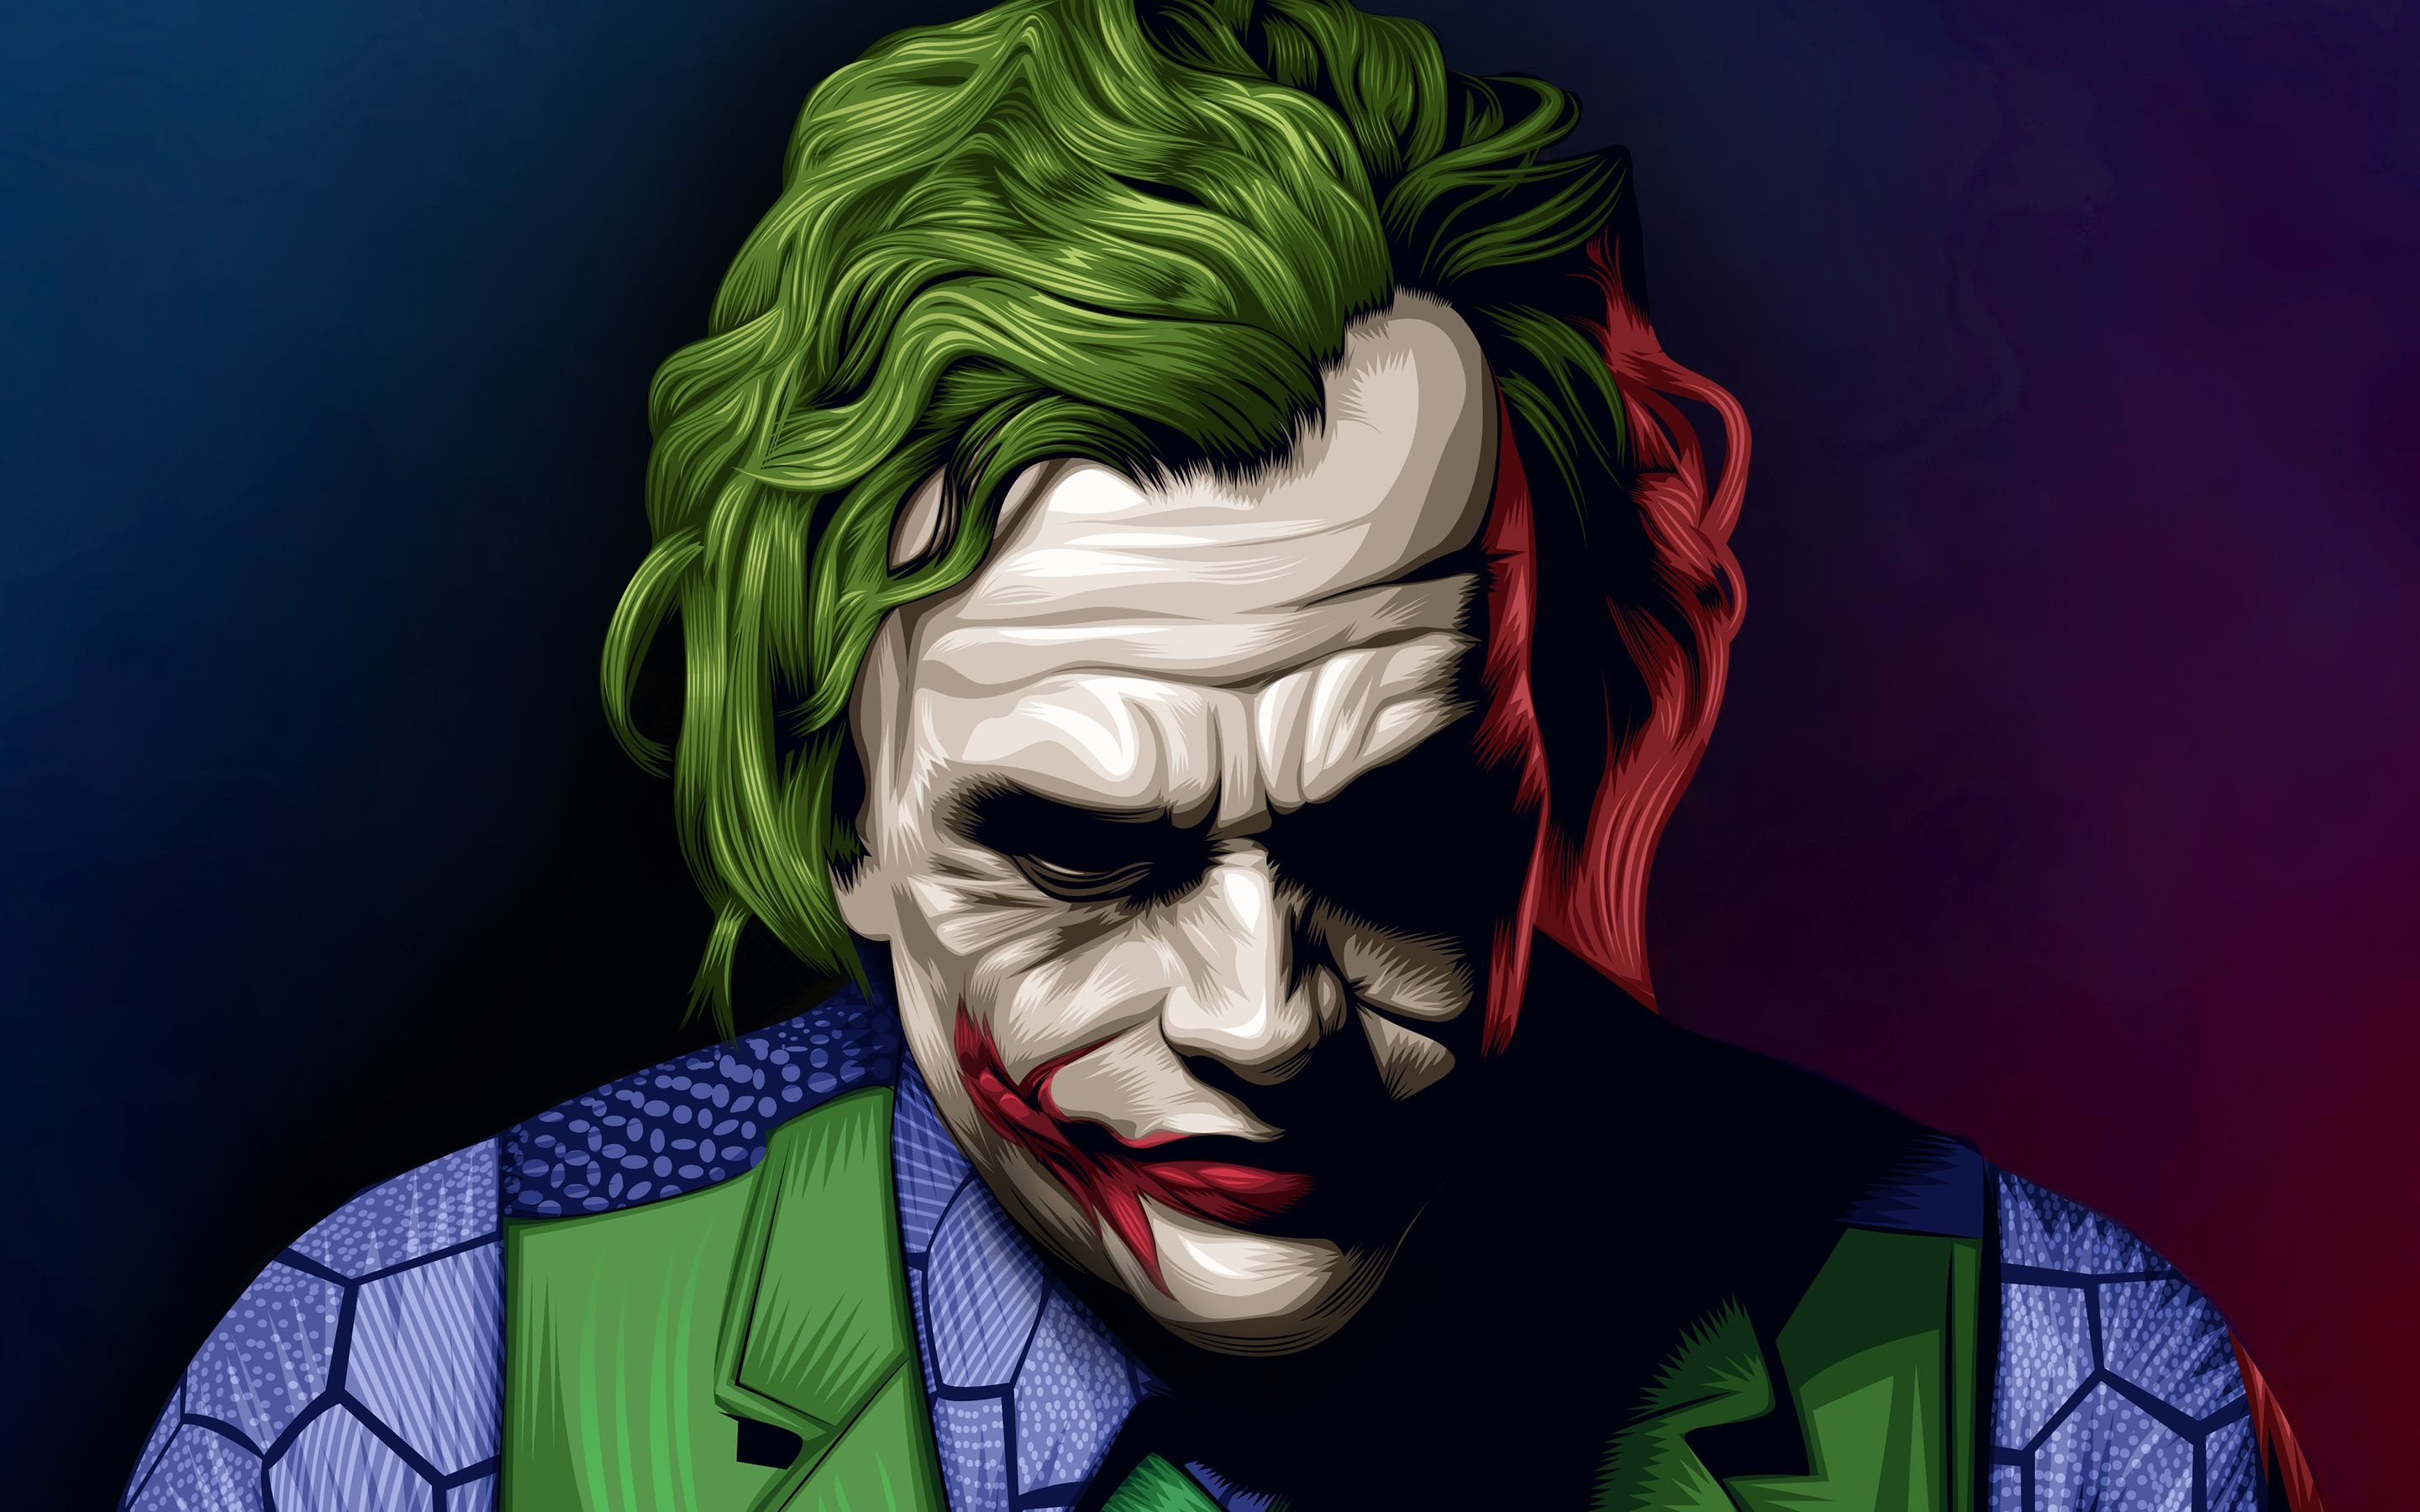 Joker Heath Ledger Illustration Macbook Pro Retina Hd 4k Wallpapers Joker 2979741 Hd Wallpaper Backgrounds Download